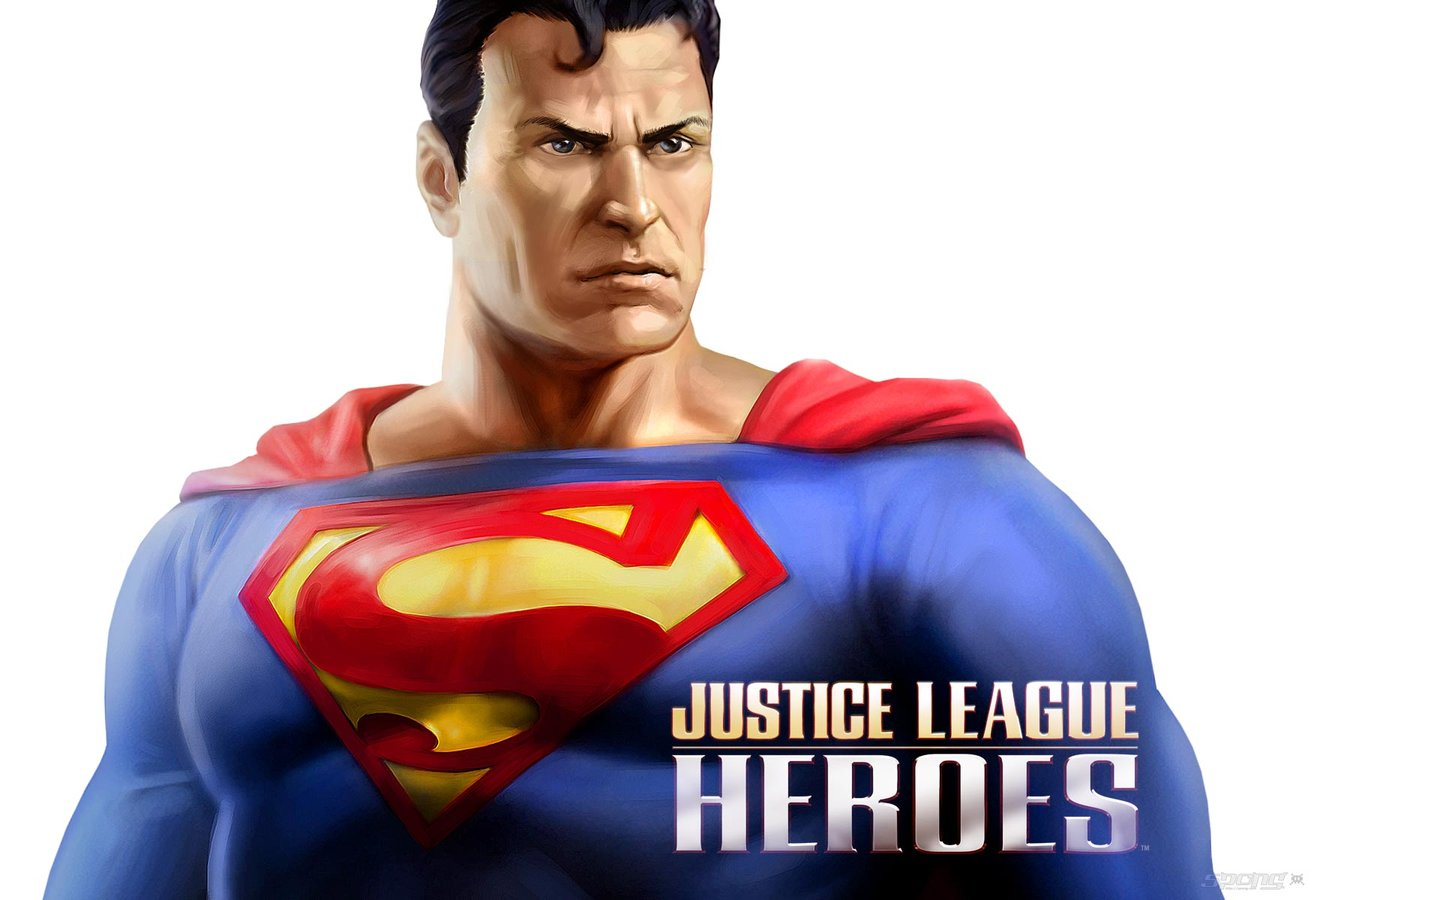 Justice League Heroes - PC Wallpaper